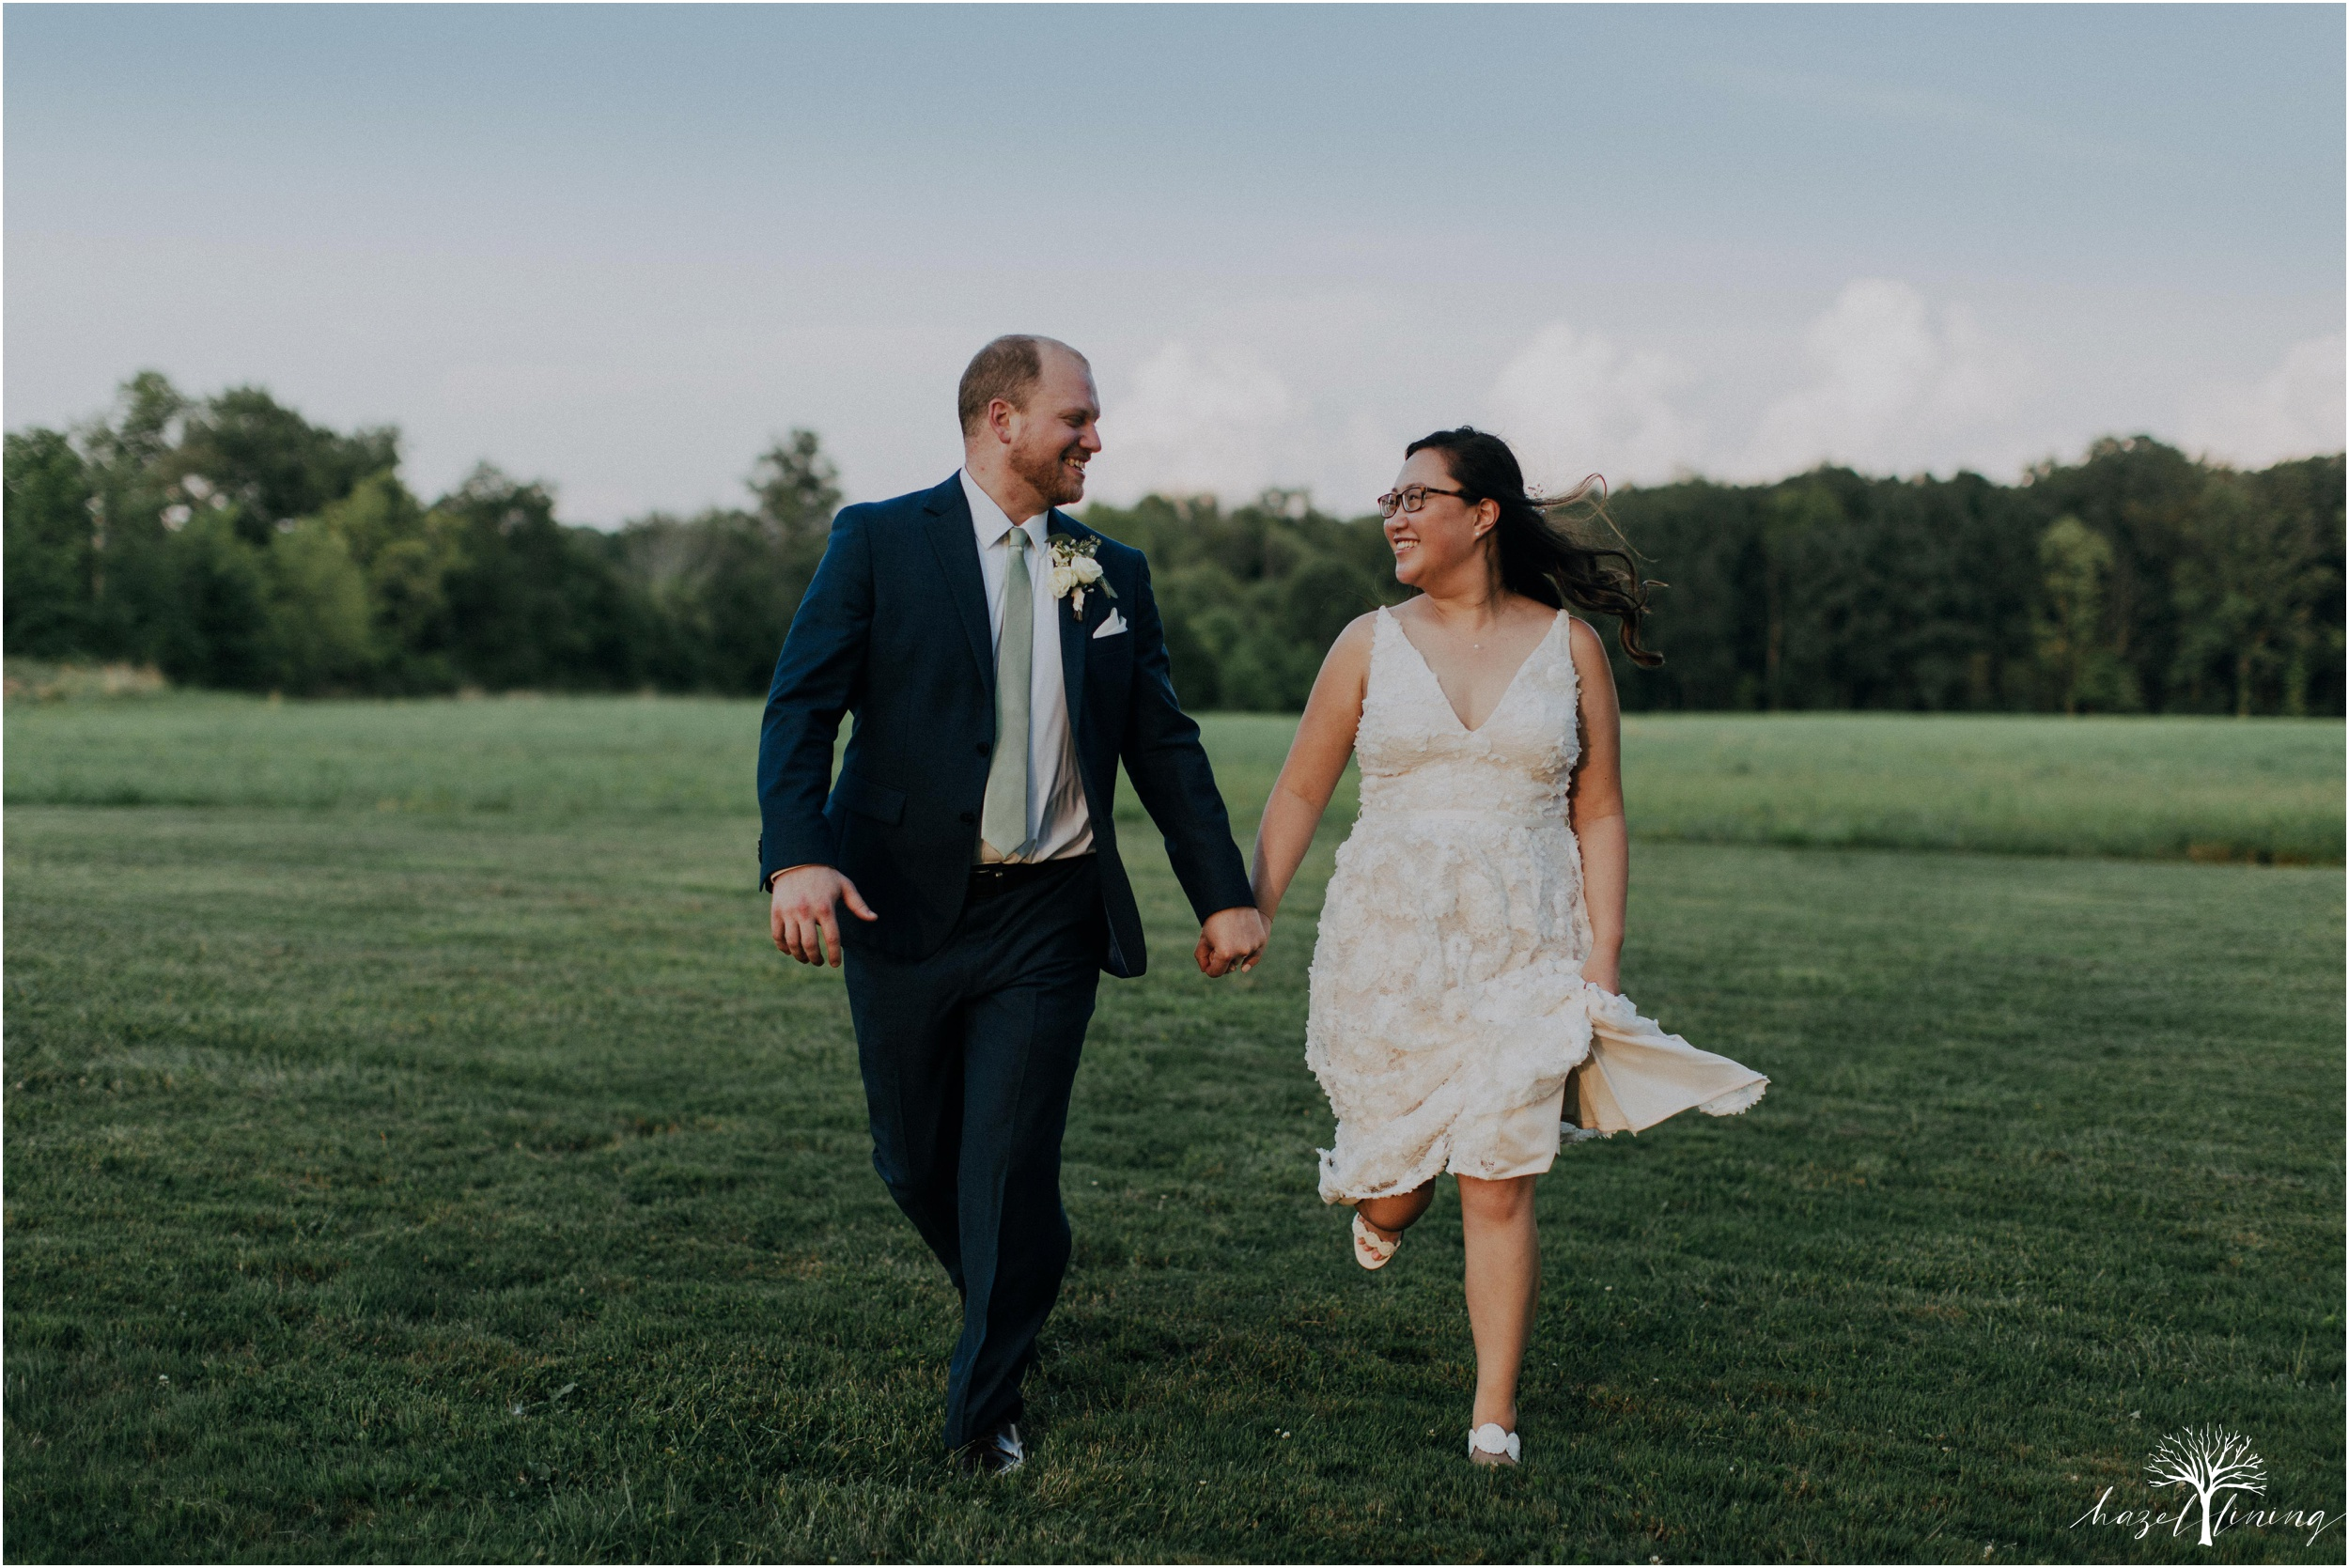 jason-tercha-laura-caruso-the-farm-bakery-and-events-quakertown-pa-summer-wedding-hazel-lining-photography-destination-elopement-wedding-engagement-photography_0133.jpg